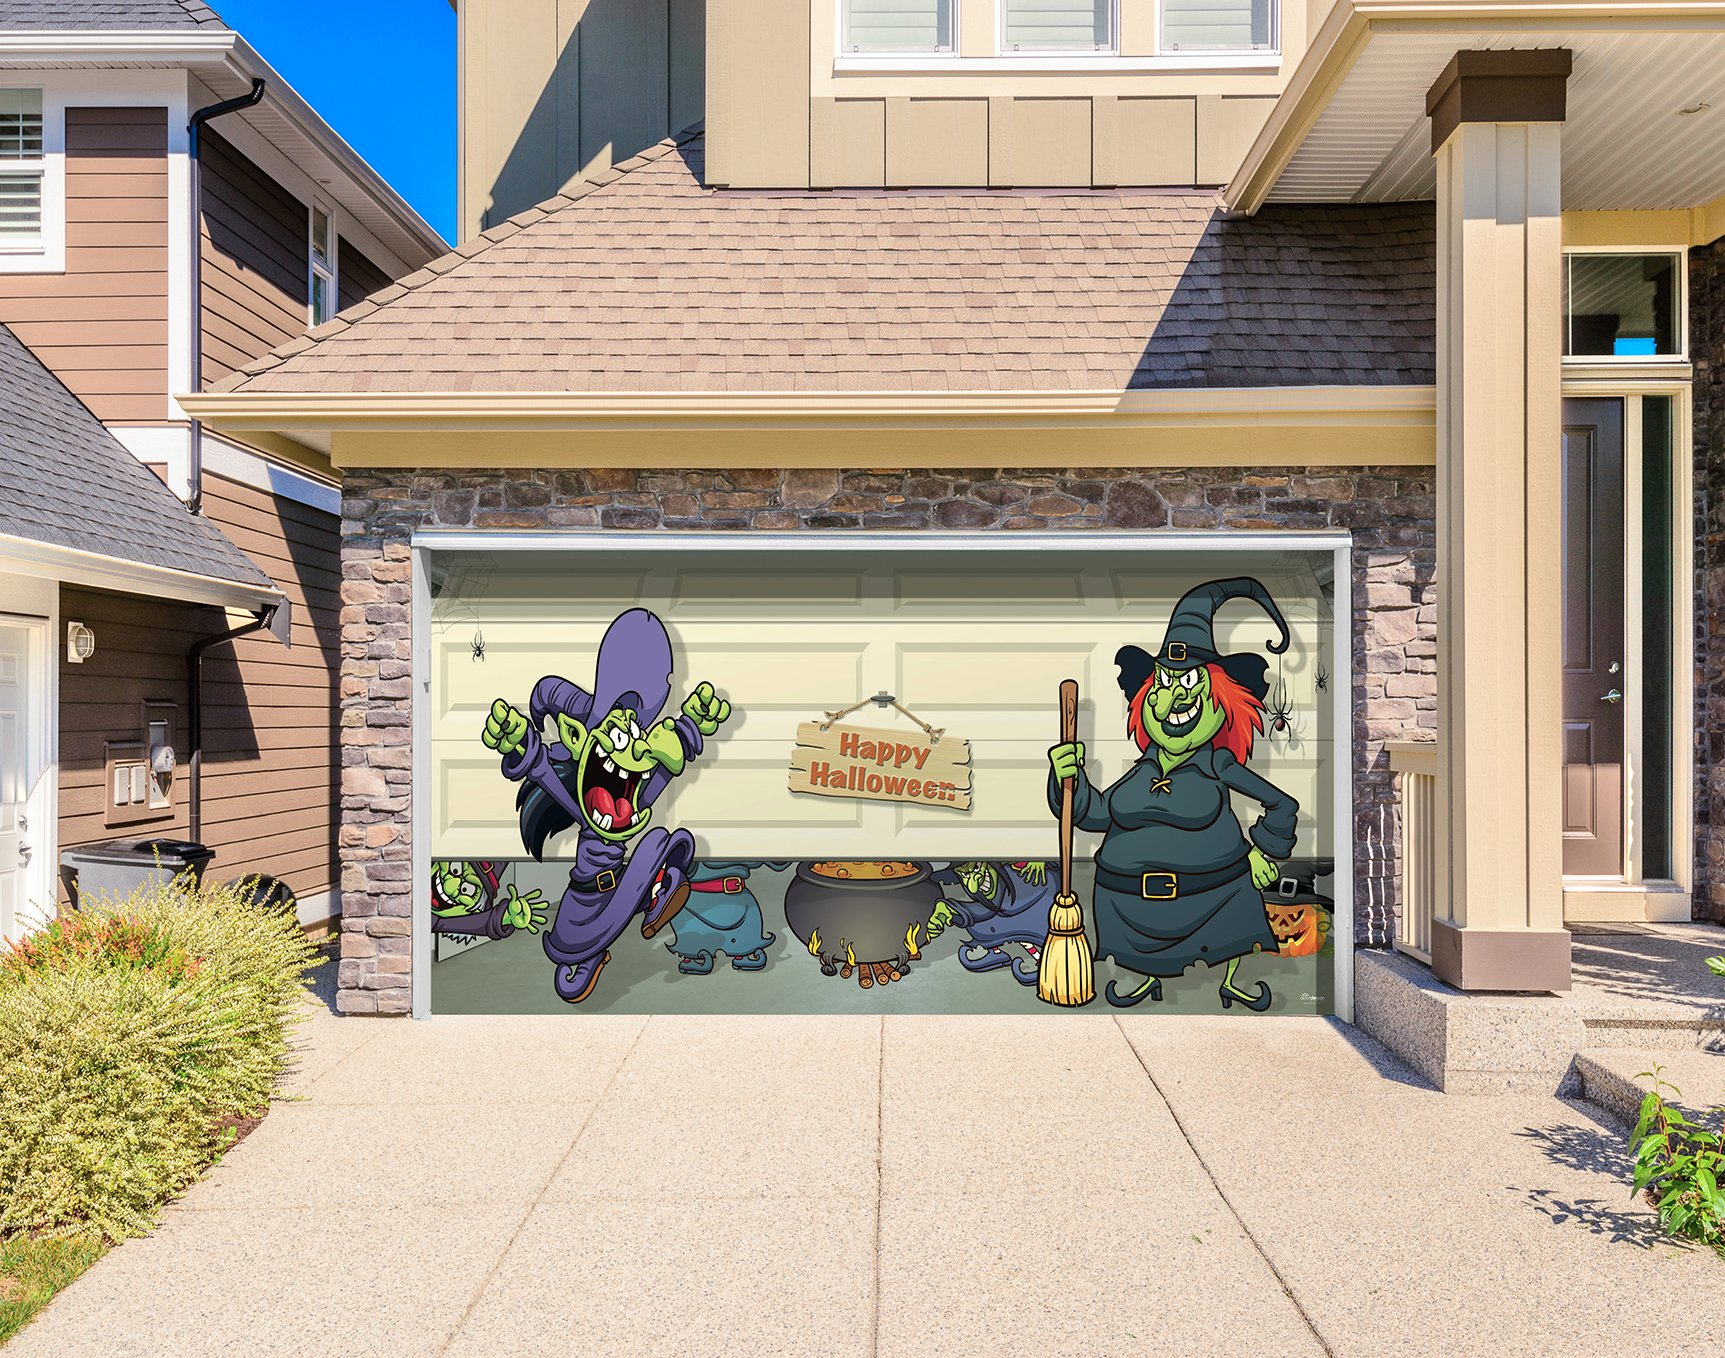 Outdoor Halloween Holiday Garage Door Banner Cover Mural Décoration 8'x16' - Halloween Witch Escape - Outdoor Halloween Holiday Garage Door Banner Décor Sign 8'x16' by Victory Corps